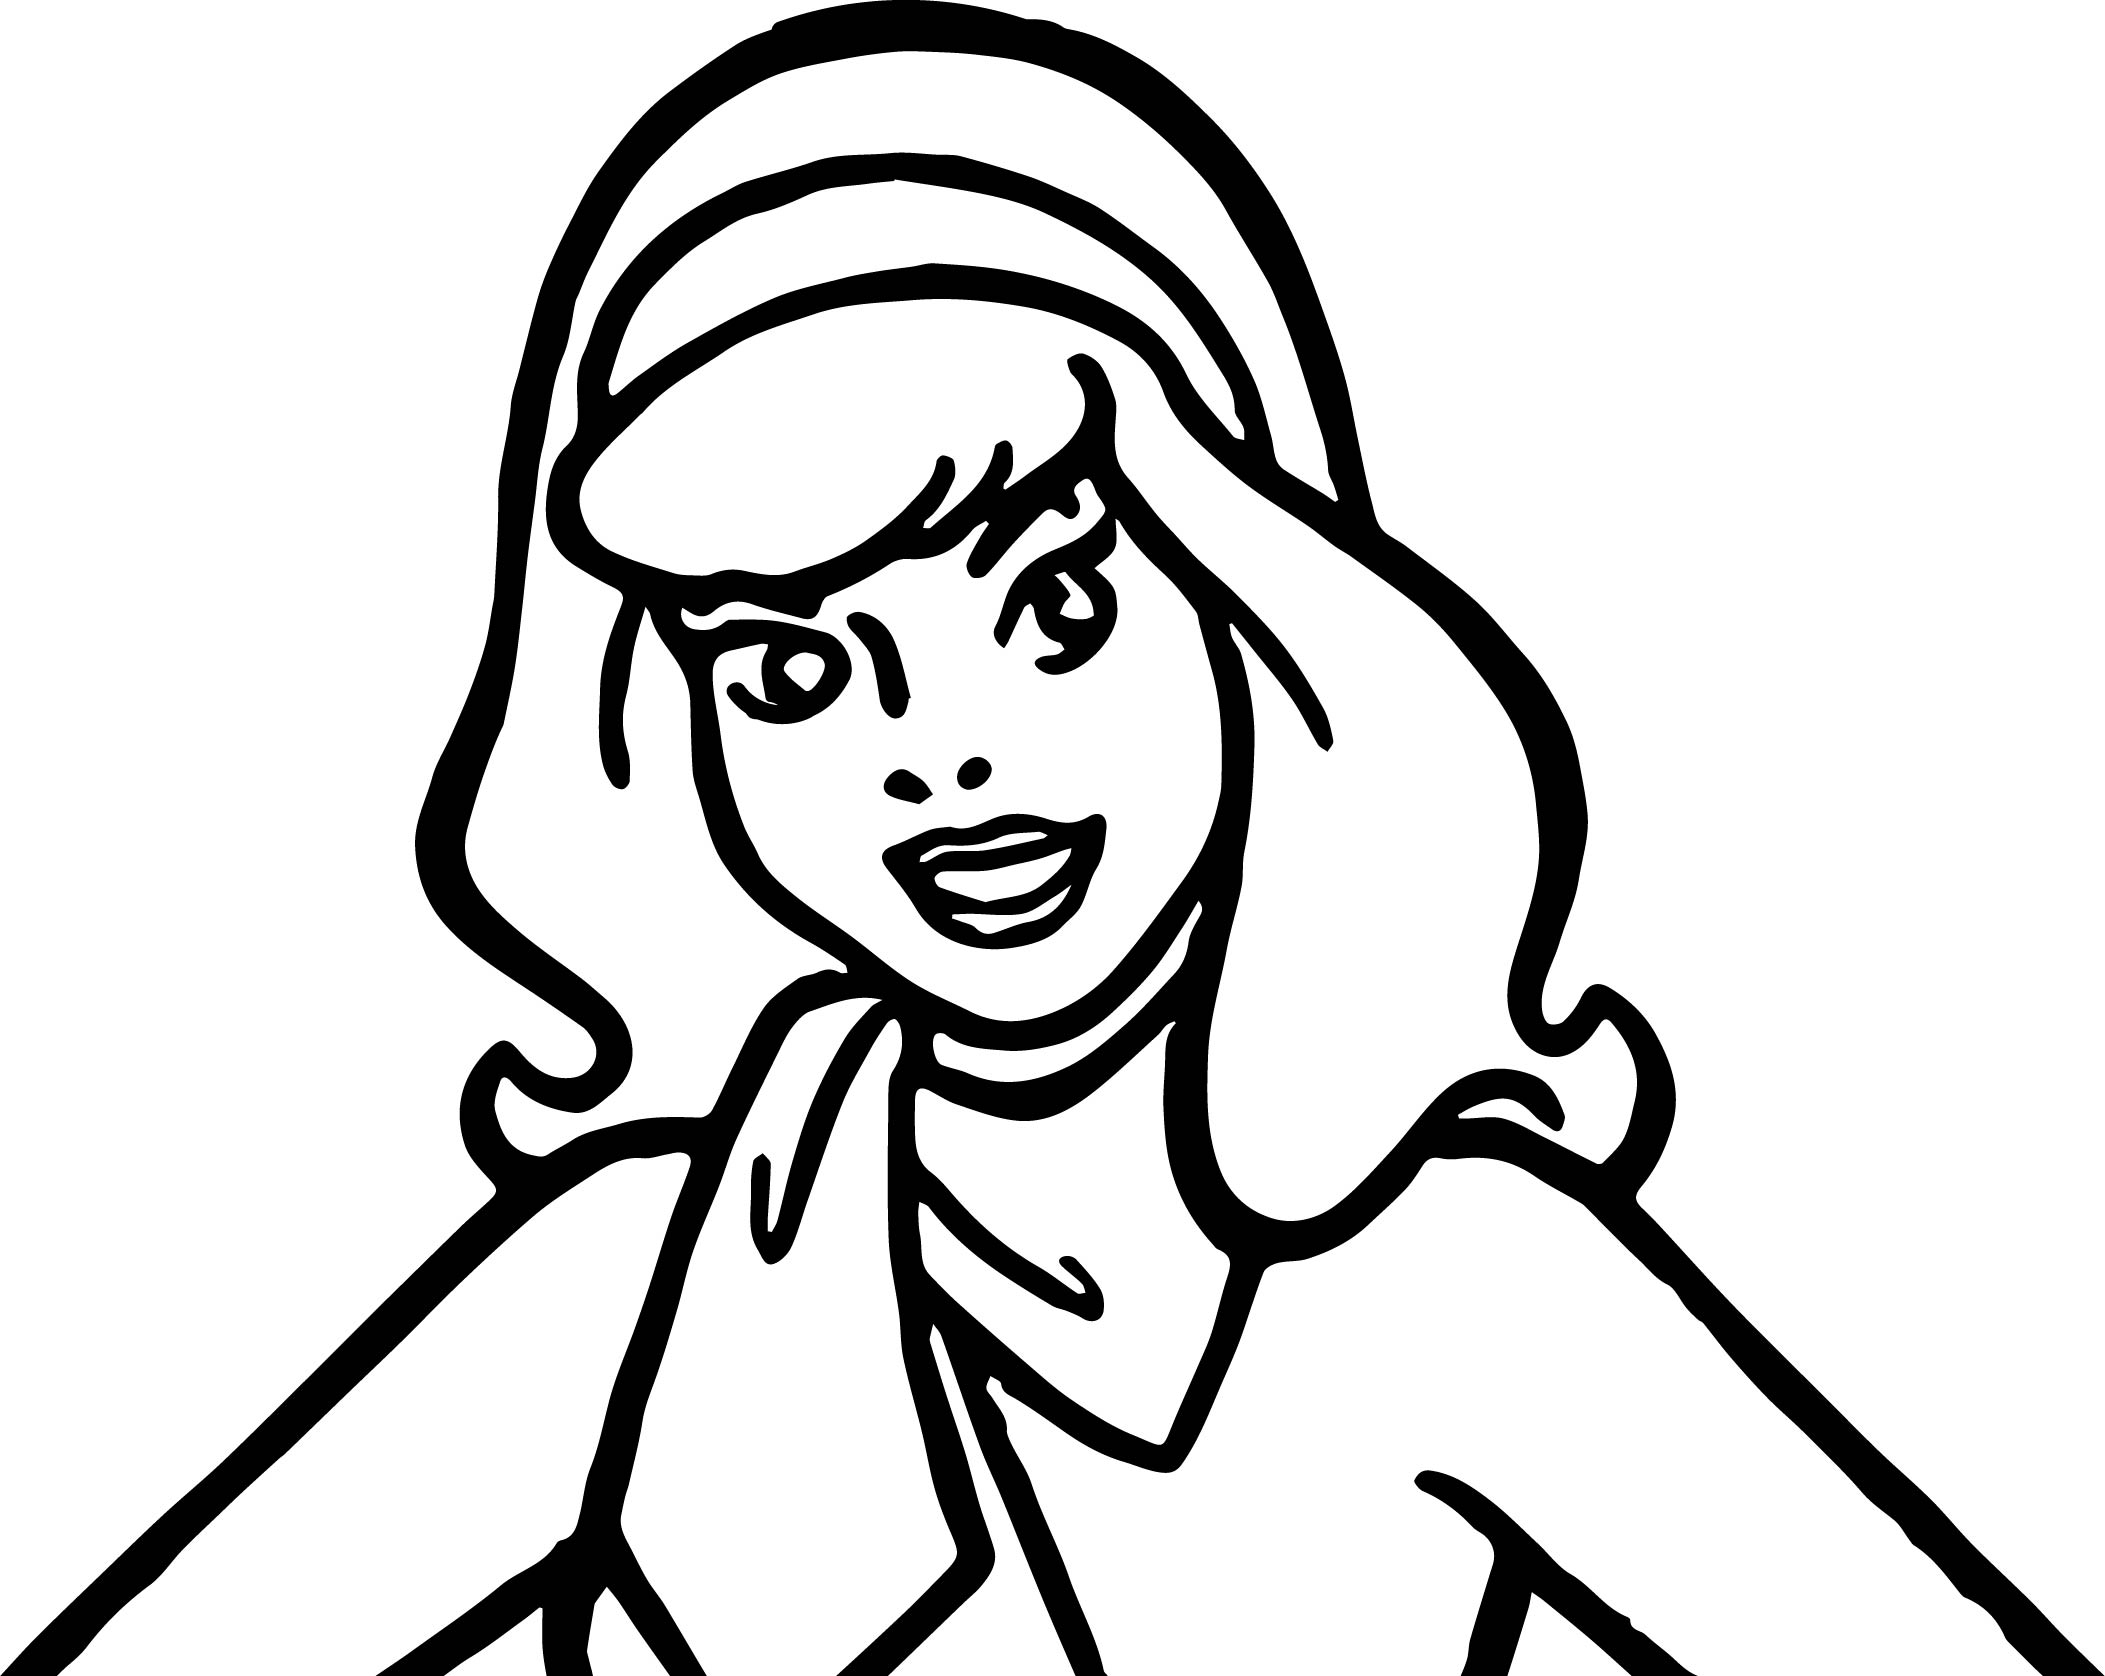 daphne scooby doo make up coloring page - Scooby Doo Pictures To Colour